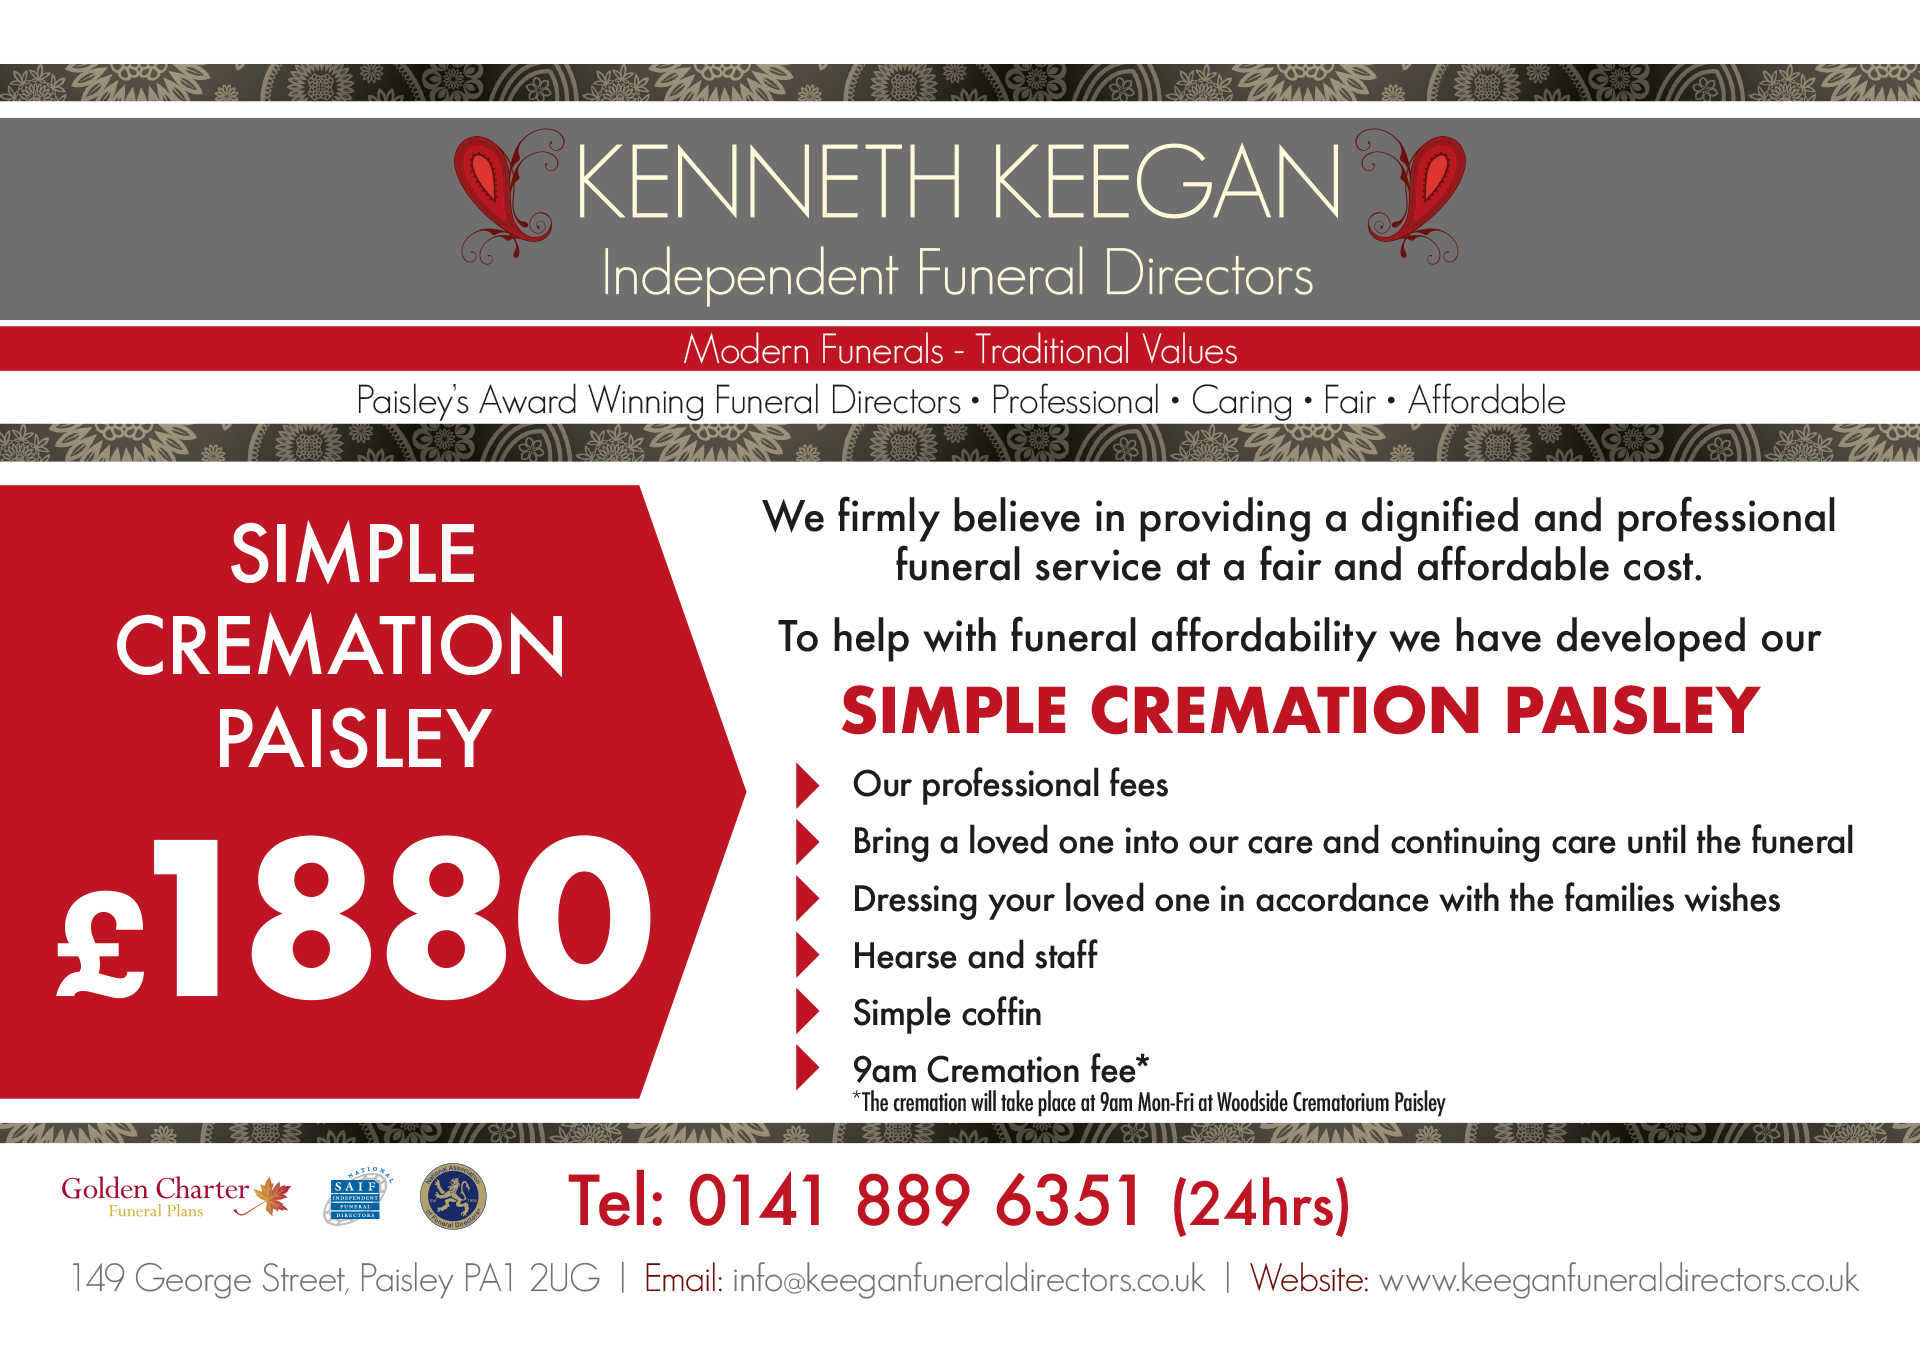 Kenneth-Keegan-Simple-Cremation-Paisley-A4L-UPDATED-13-11-2020